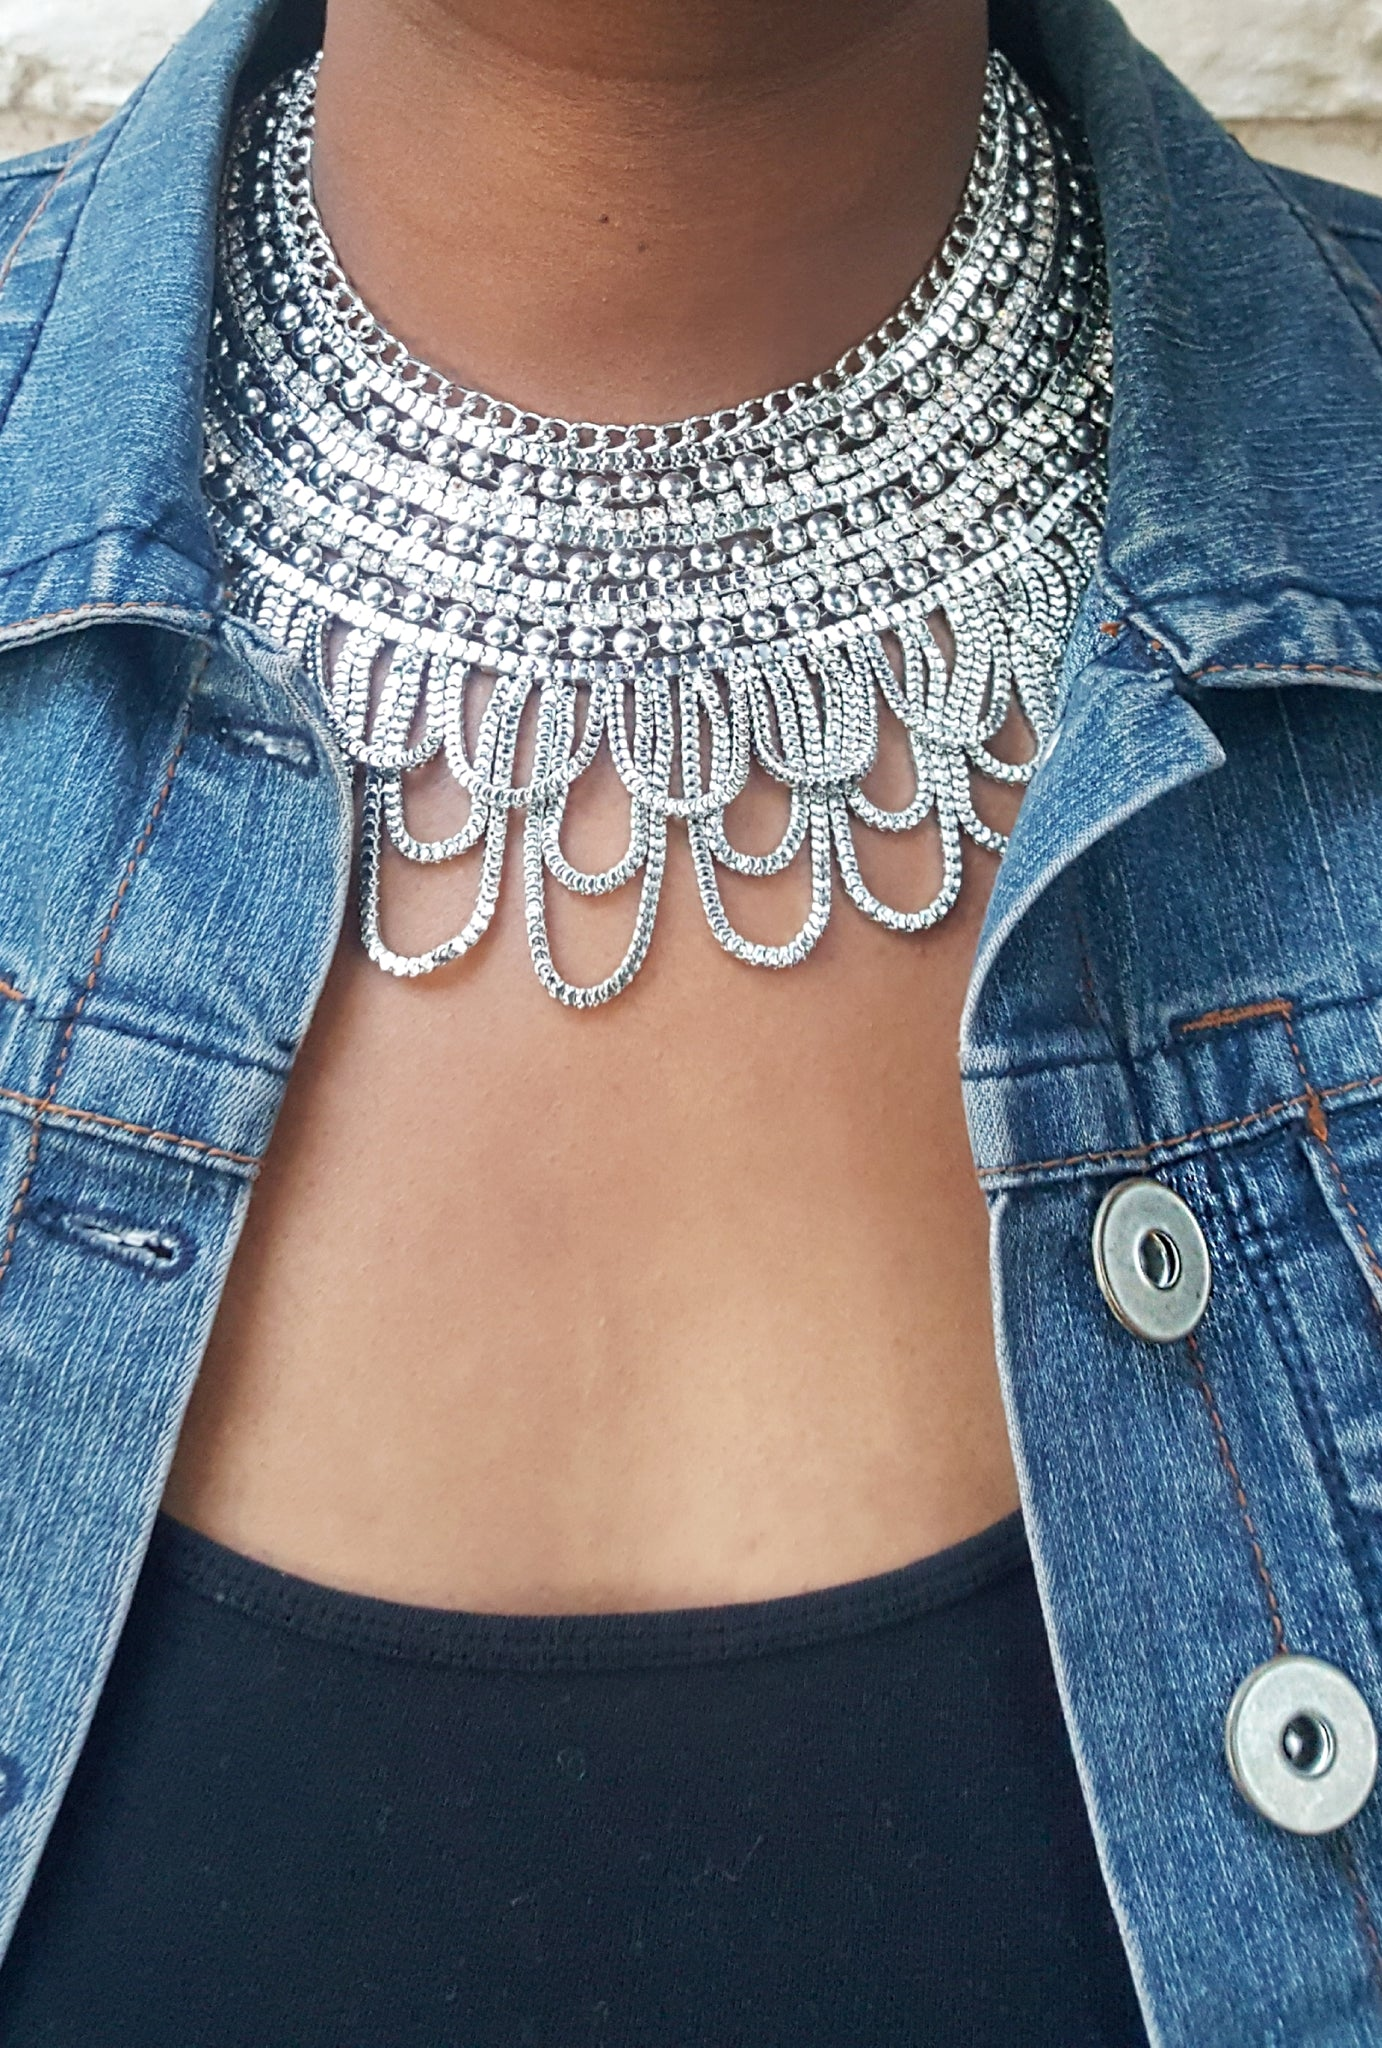 Layered Chains Statement Necklace